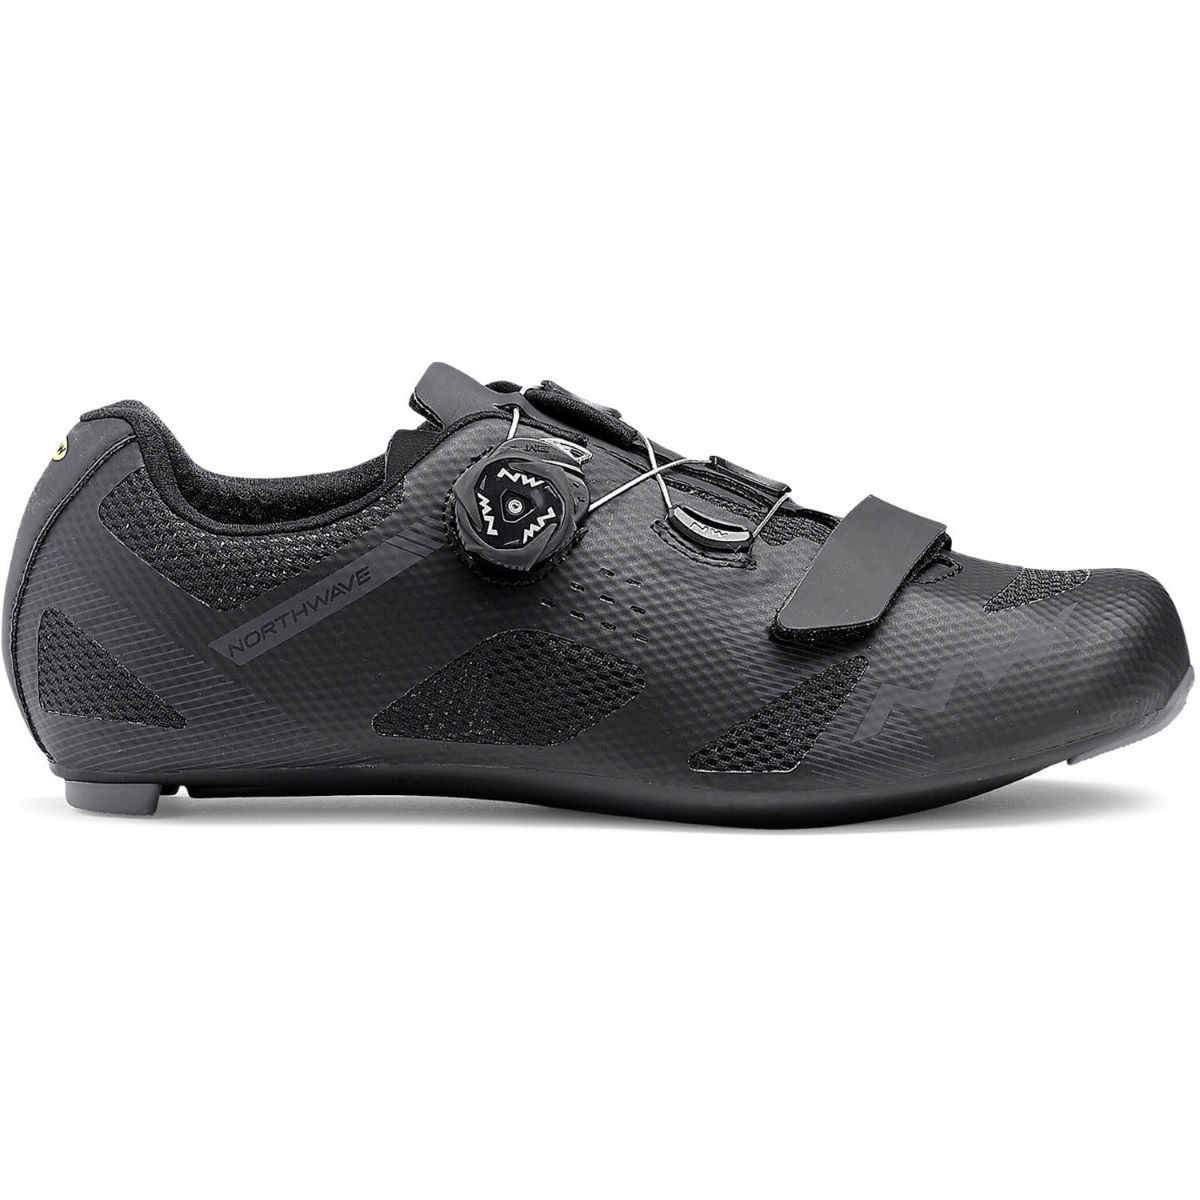 Northwave Northwave Storm Road Shoes   Cycling Shoes